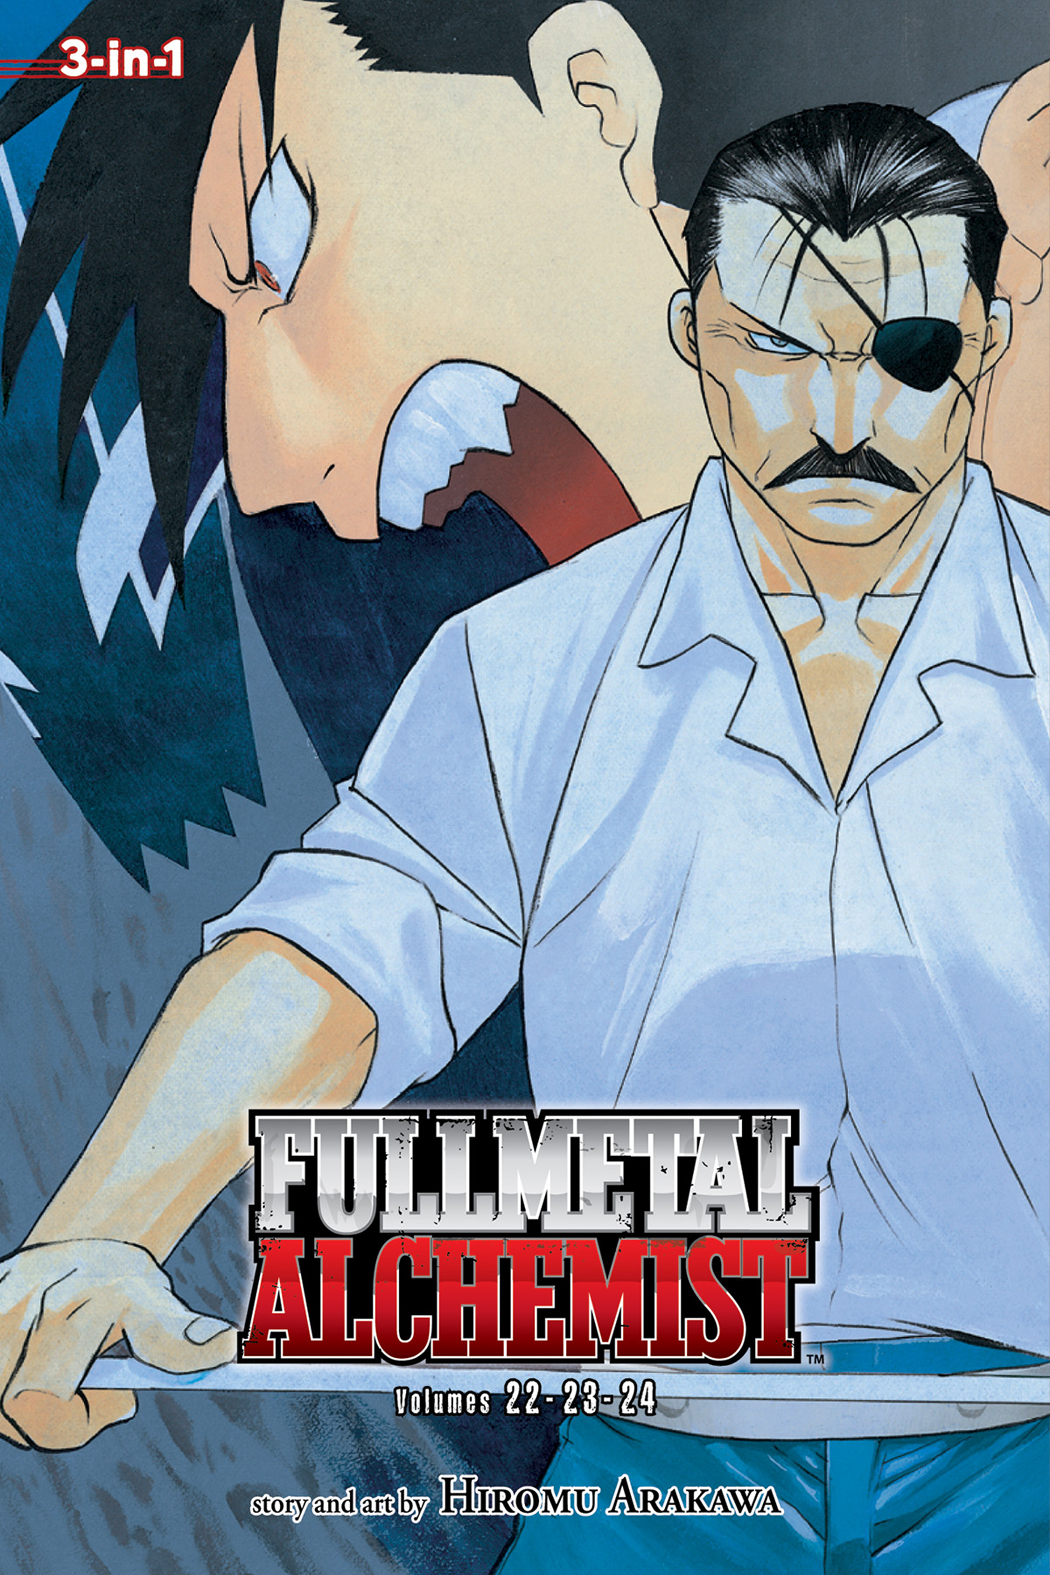 FULLMETAL ALCHEMIST 3IN1 TP VOL 08